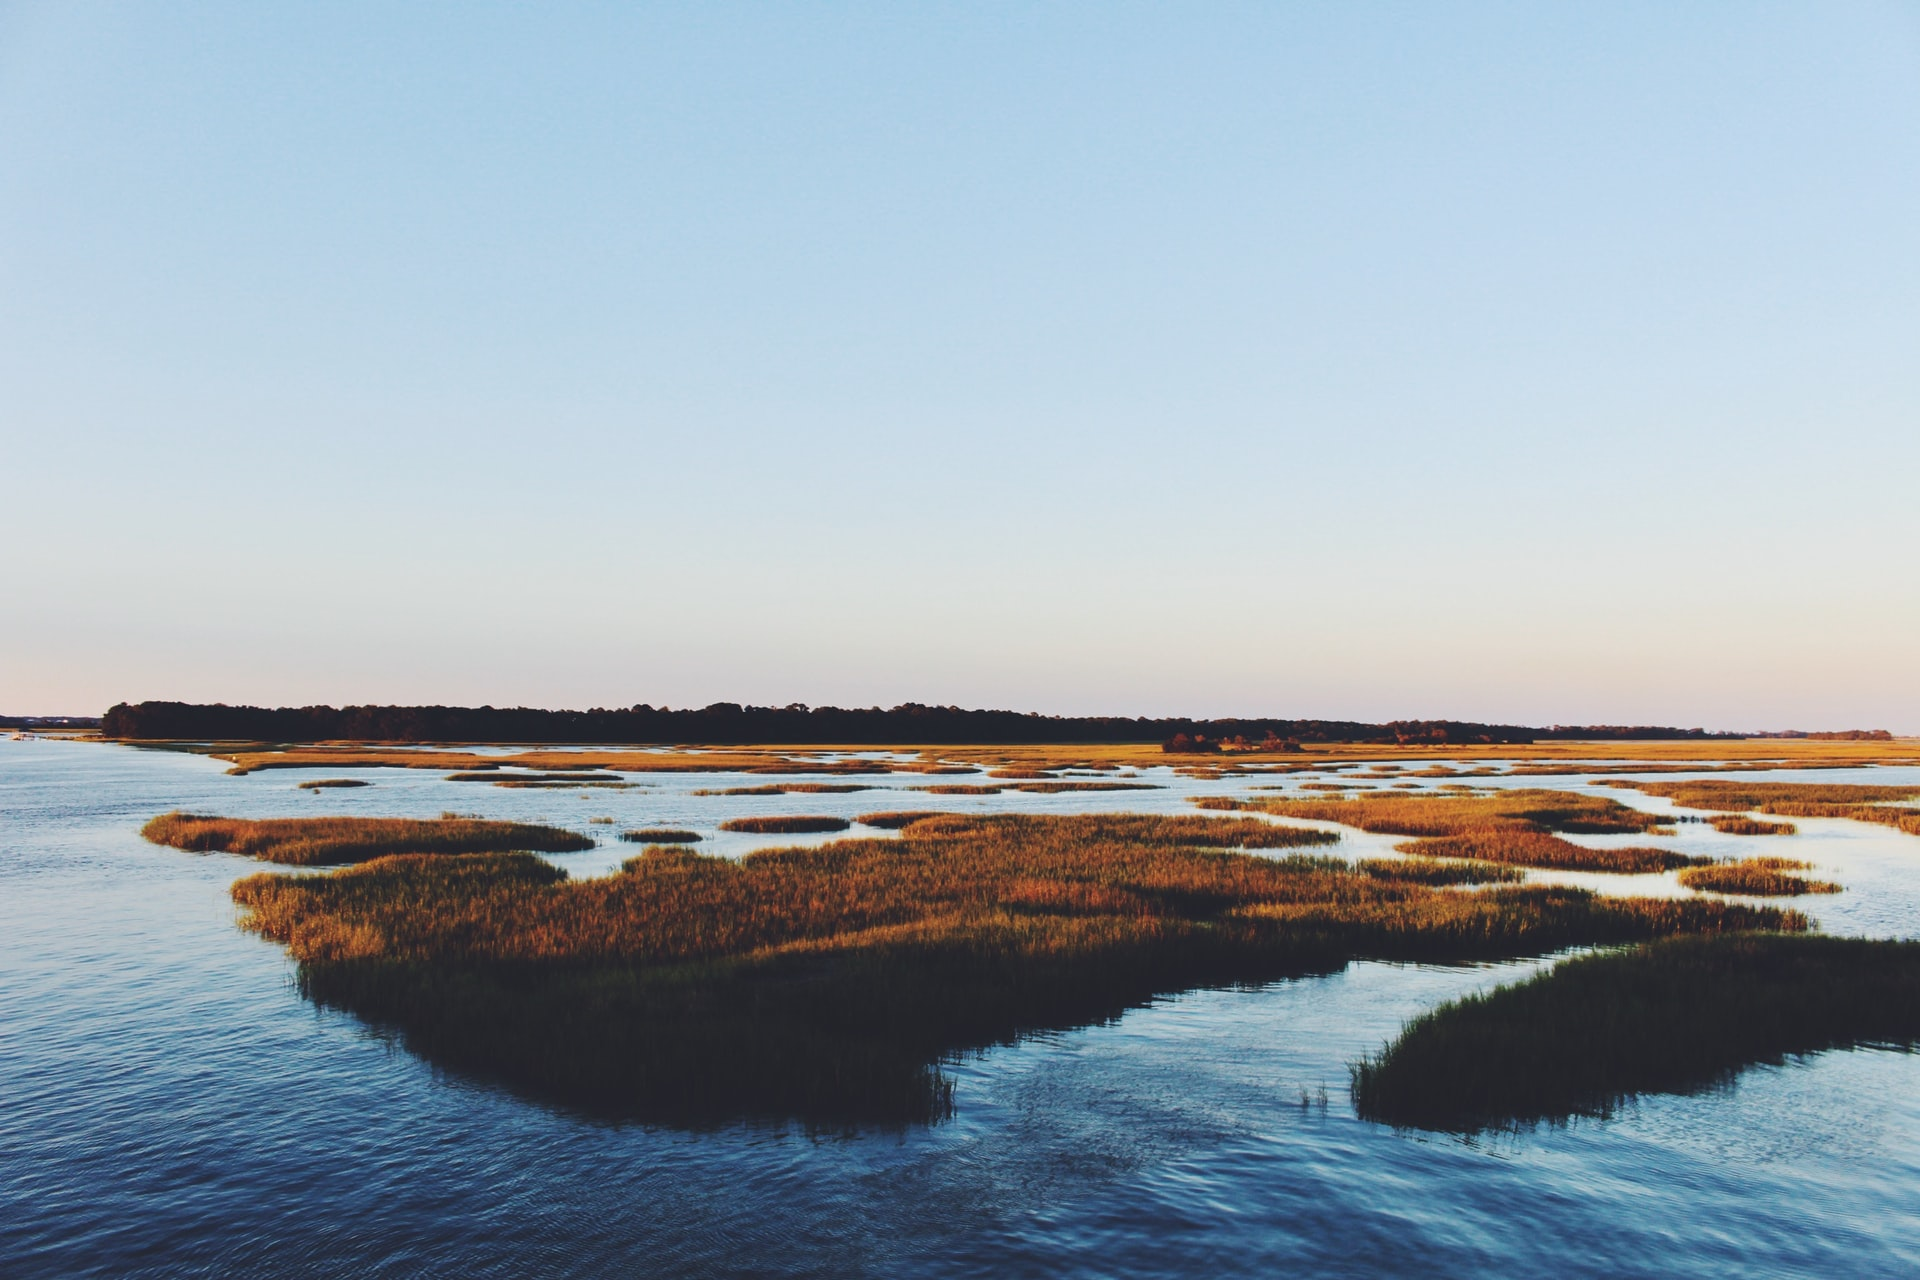 <p>Restoring coastal blue carbon ecosystems, including salt marshes such as this one, can help store carbon in addition to other restoration benefits. Photo by Bre Smith/Unsplash</p>